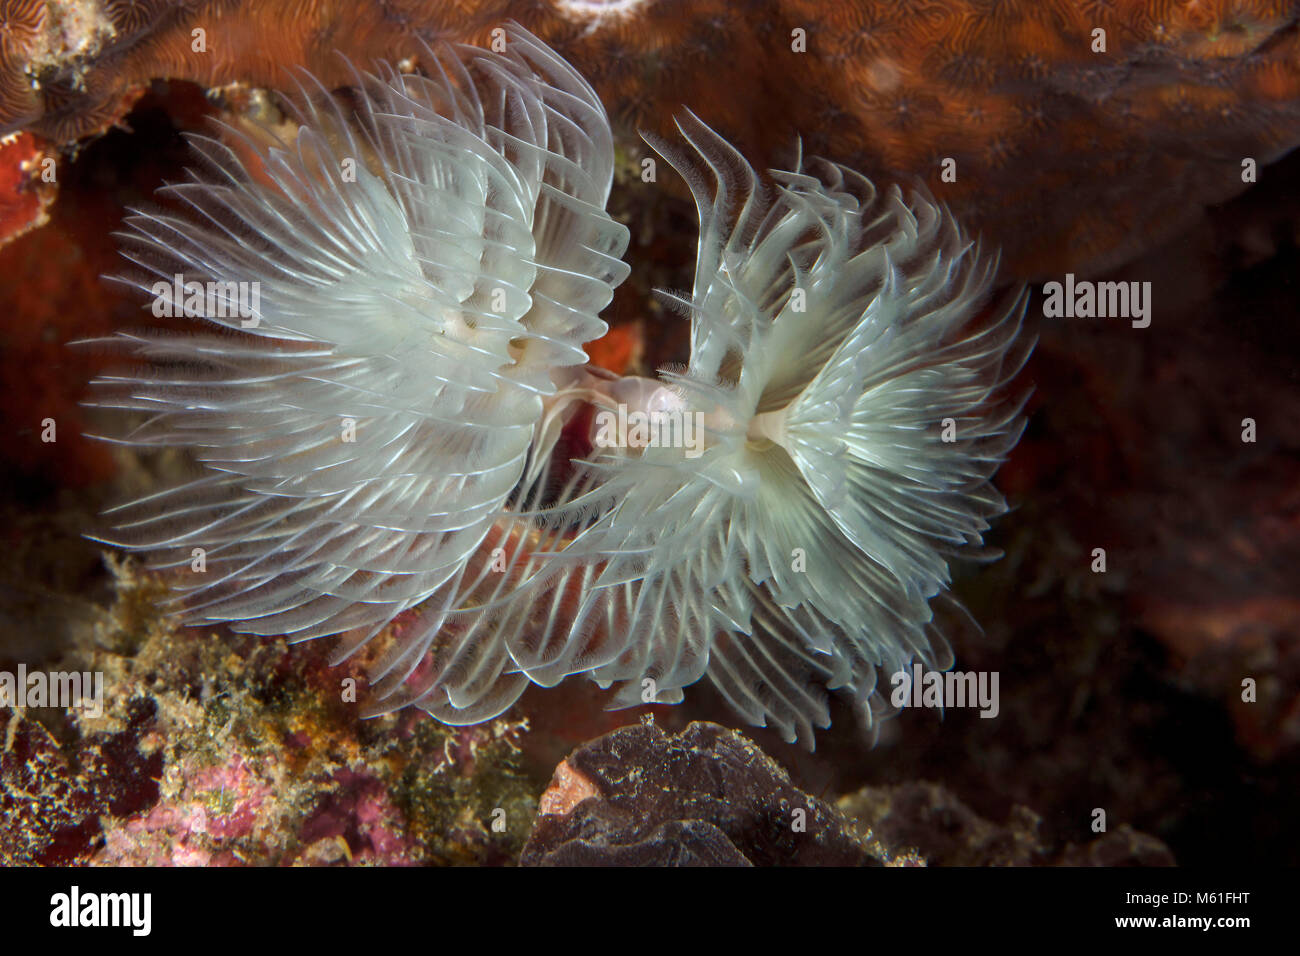 Magnificent Feather Duster Worm (Protula magnifica) near Panglao Island, Philippines Stock Photo